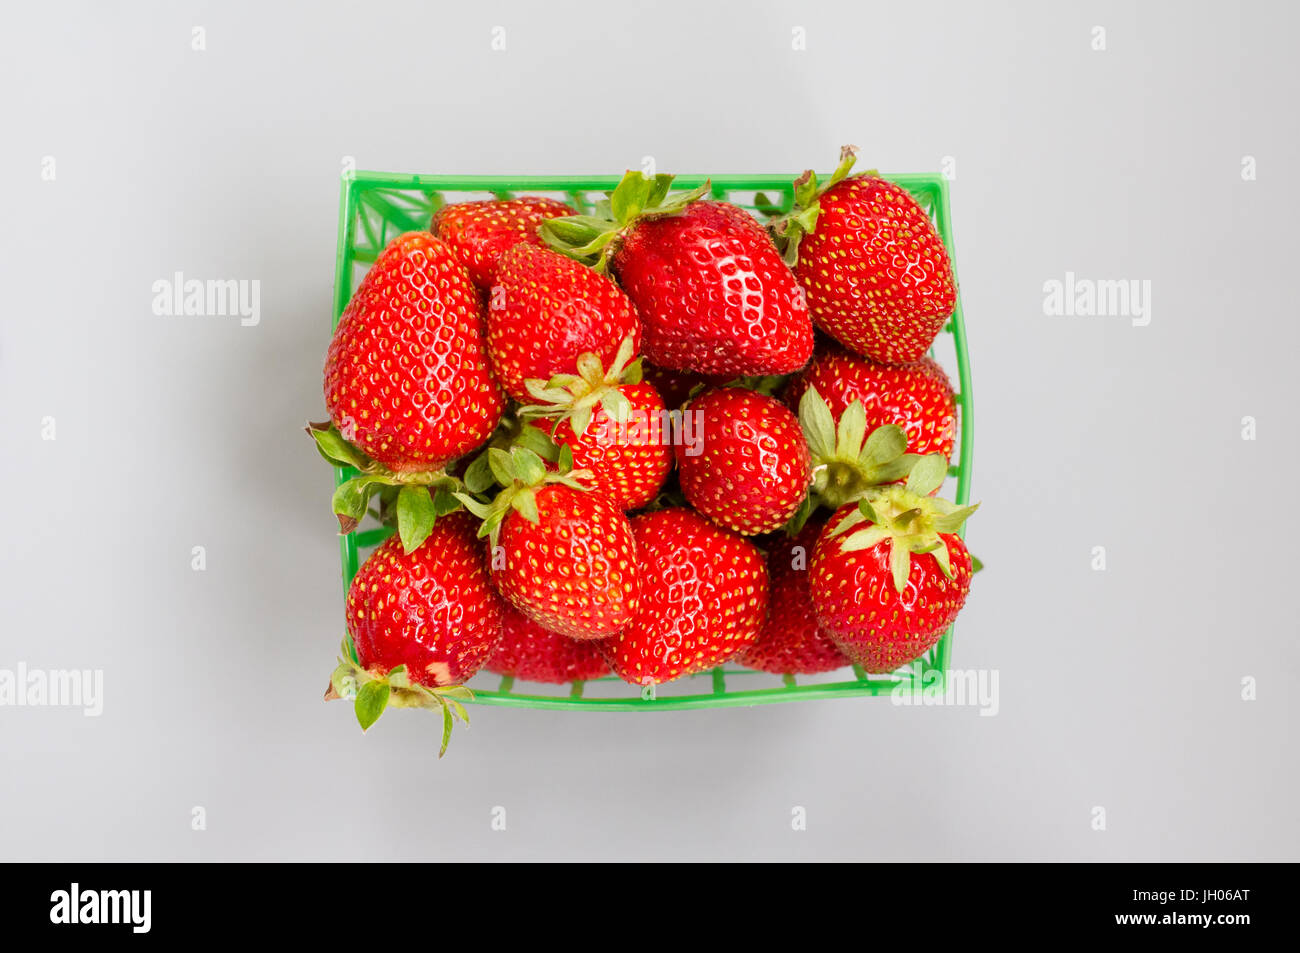 Fresh strawberries in a plastic green punnet on a light grey background - Stock Image